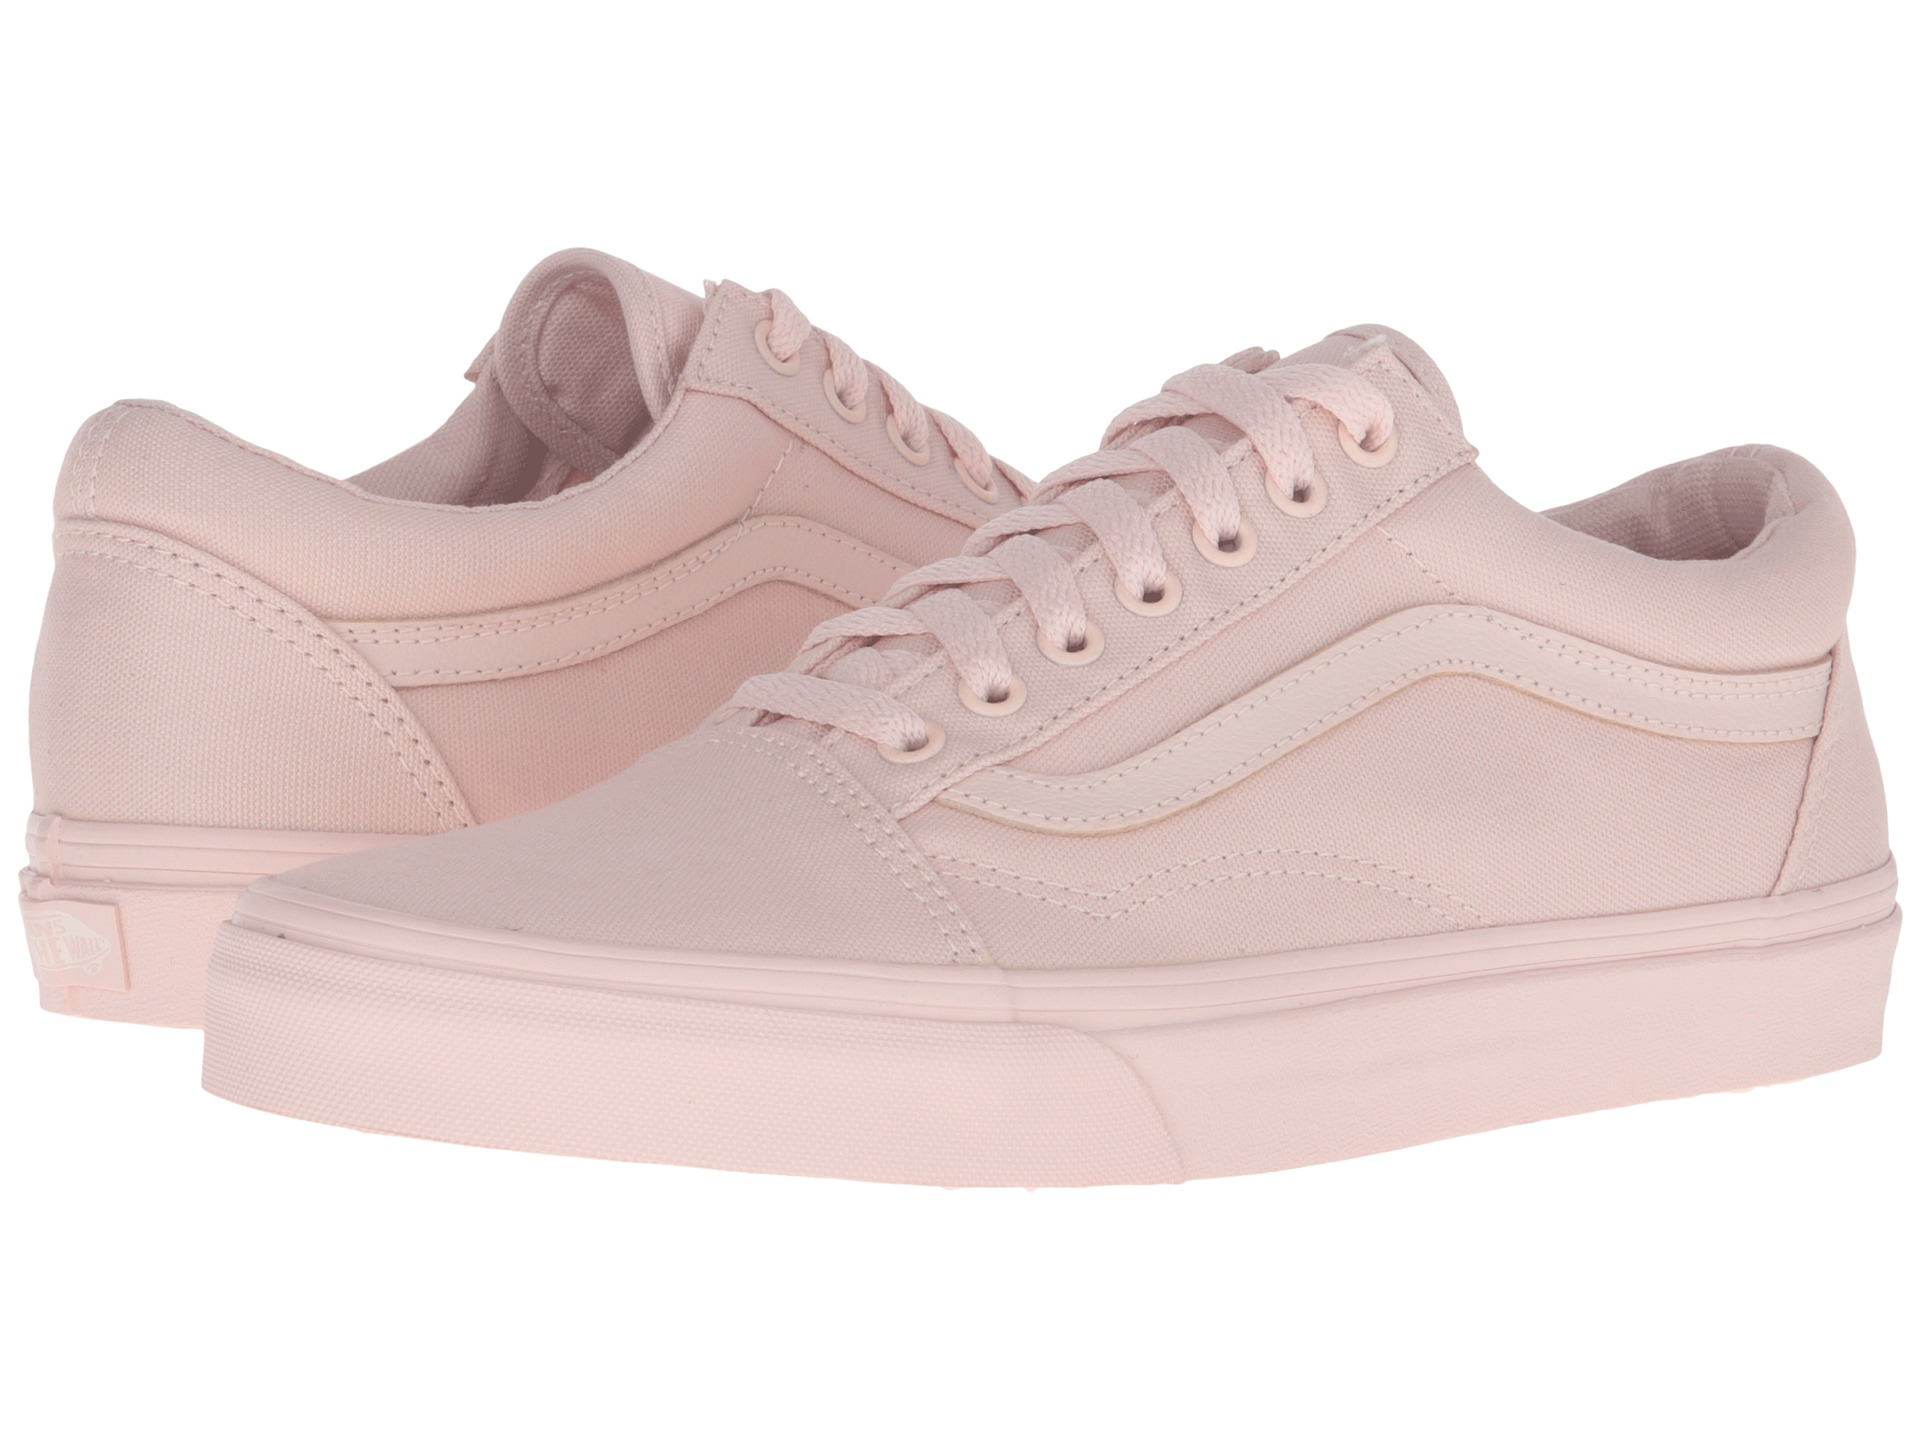 Vans Old Skool Peach